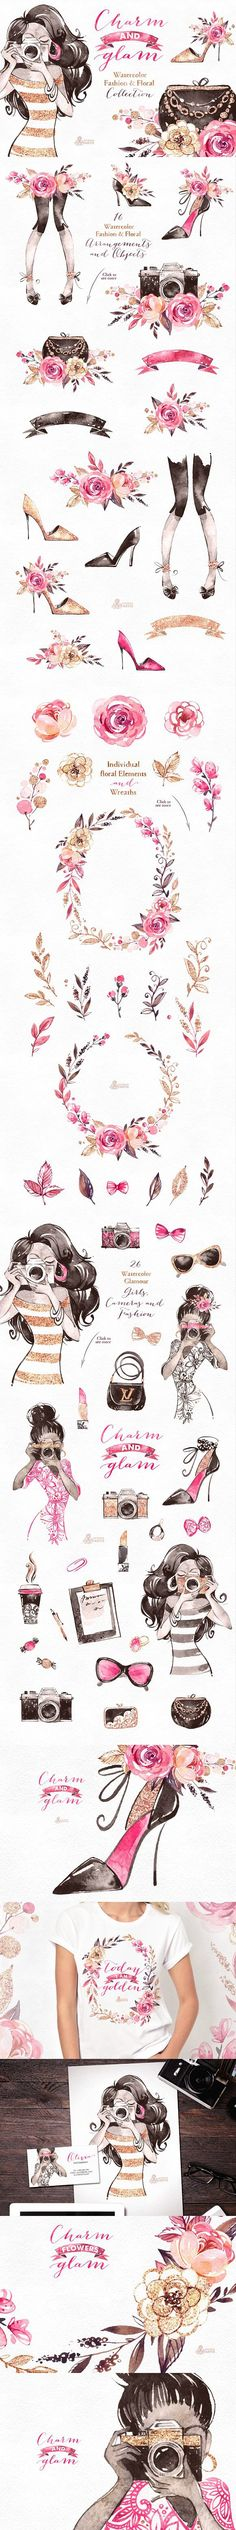 Charm & Glam. Fashion collection. Watercolor Flowers